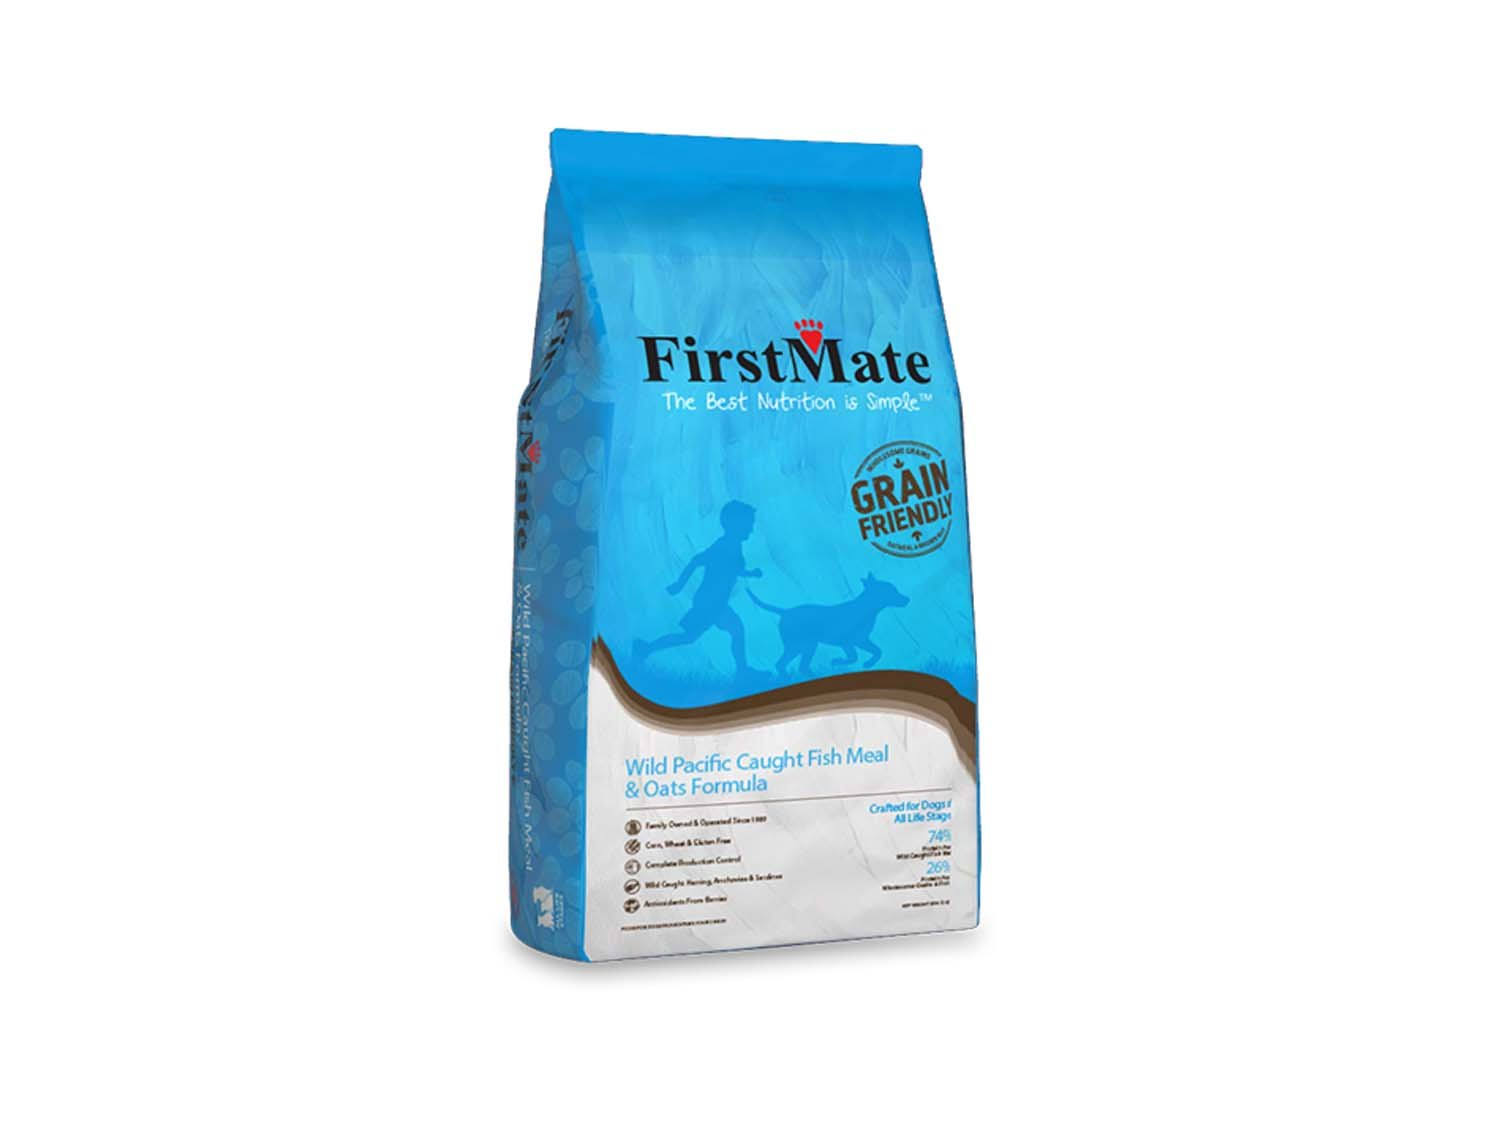 Firstmate Pet Foods Dog Food - Wild Pacific Caught Fish meal and Oats Formula, 5lbs